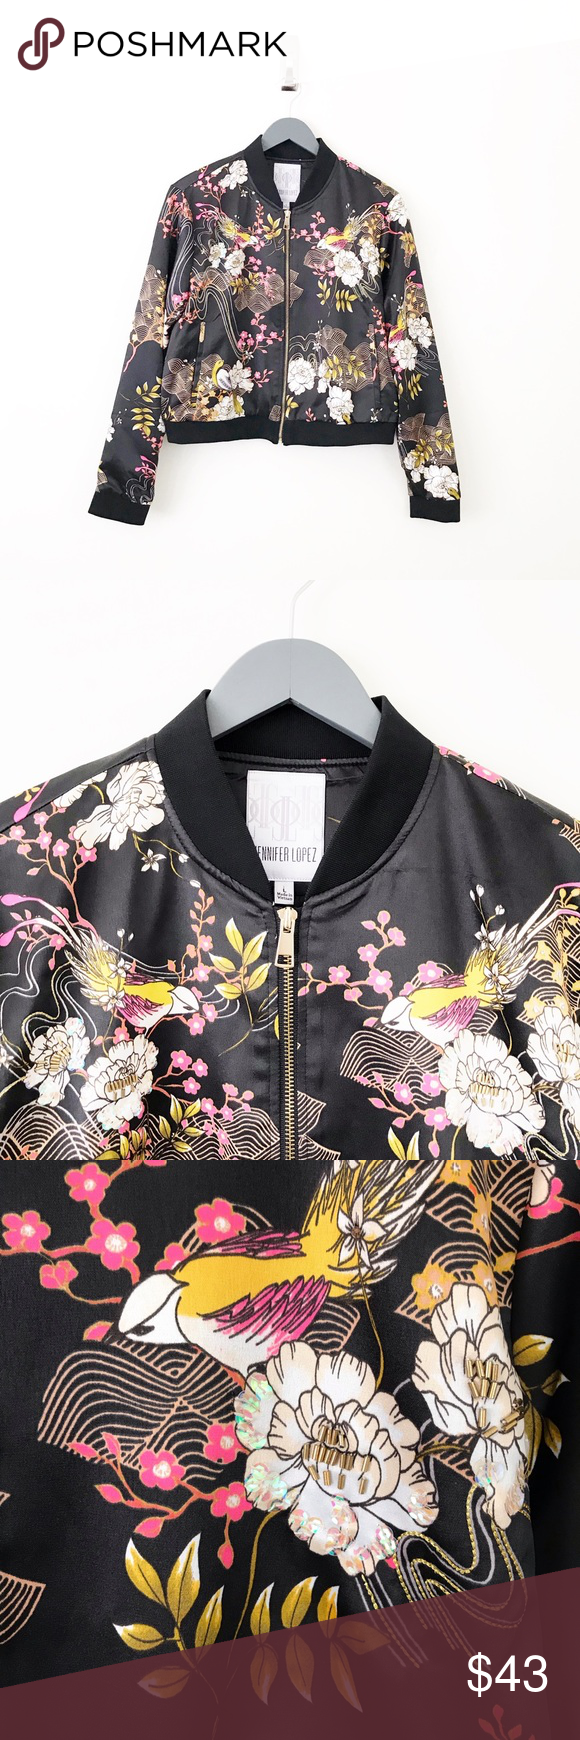 Womens Plus Size Bomber Jacket Ladies Camouflage Floral Print Coat Long Sleeve Ribbed Zip Closure Nouvelle Collection